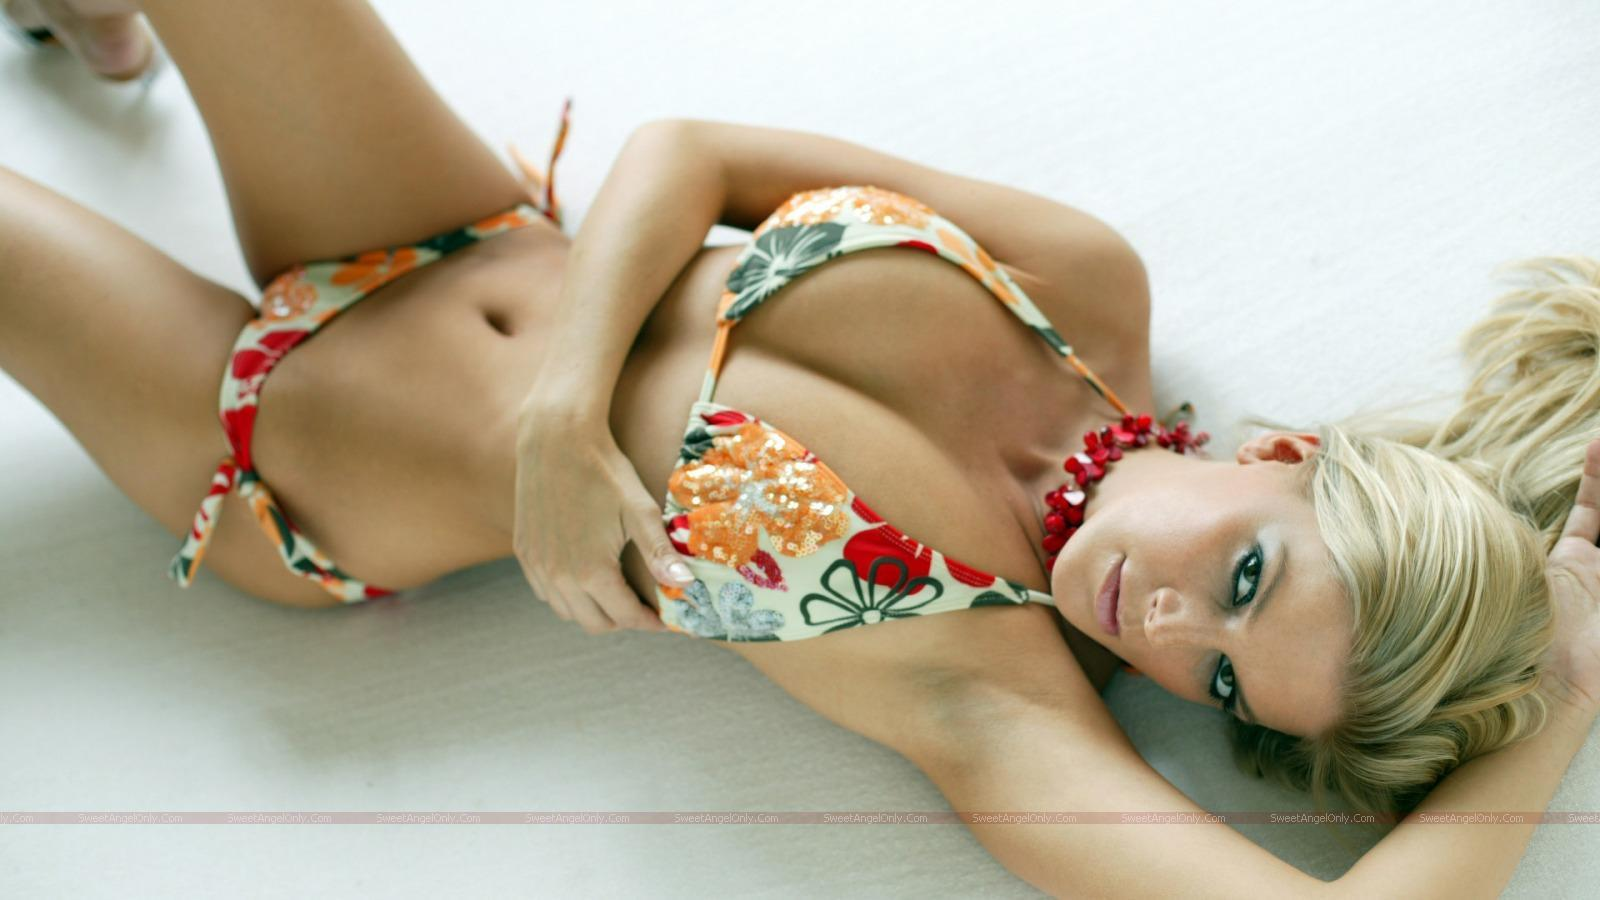 http://3.bp.blogspot.com/_jJPqWg6V3Y8/TTmIz9LIRQI/AAAAAAAADtU/KL54M87QlB0/s1600/hollywood_hot_actress_wallpapers_59_01.jpg